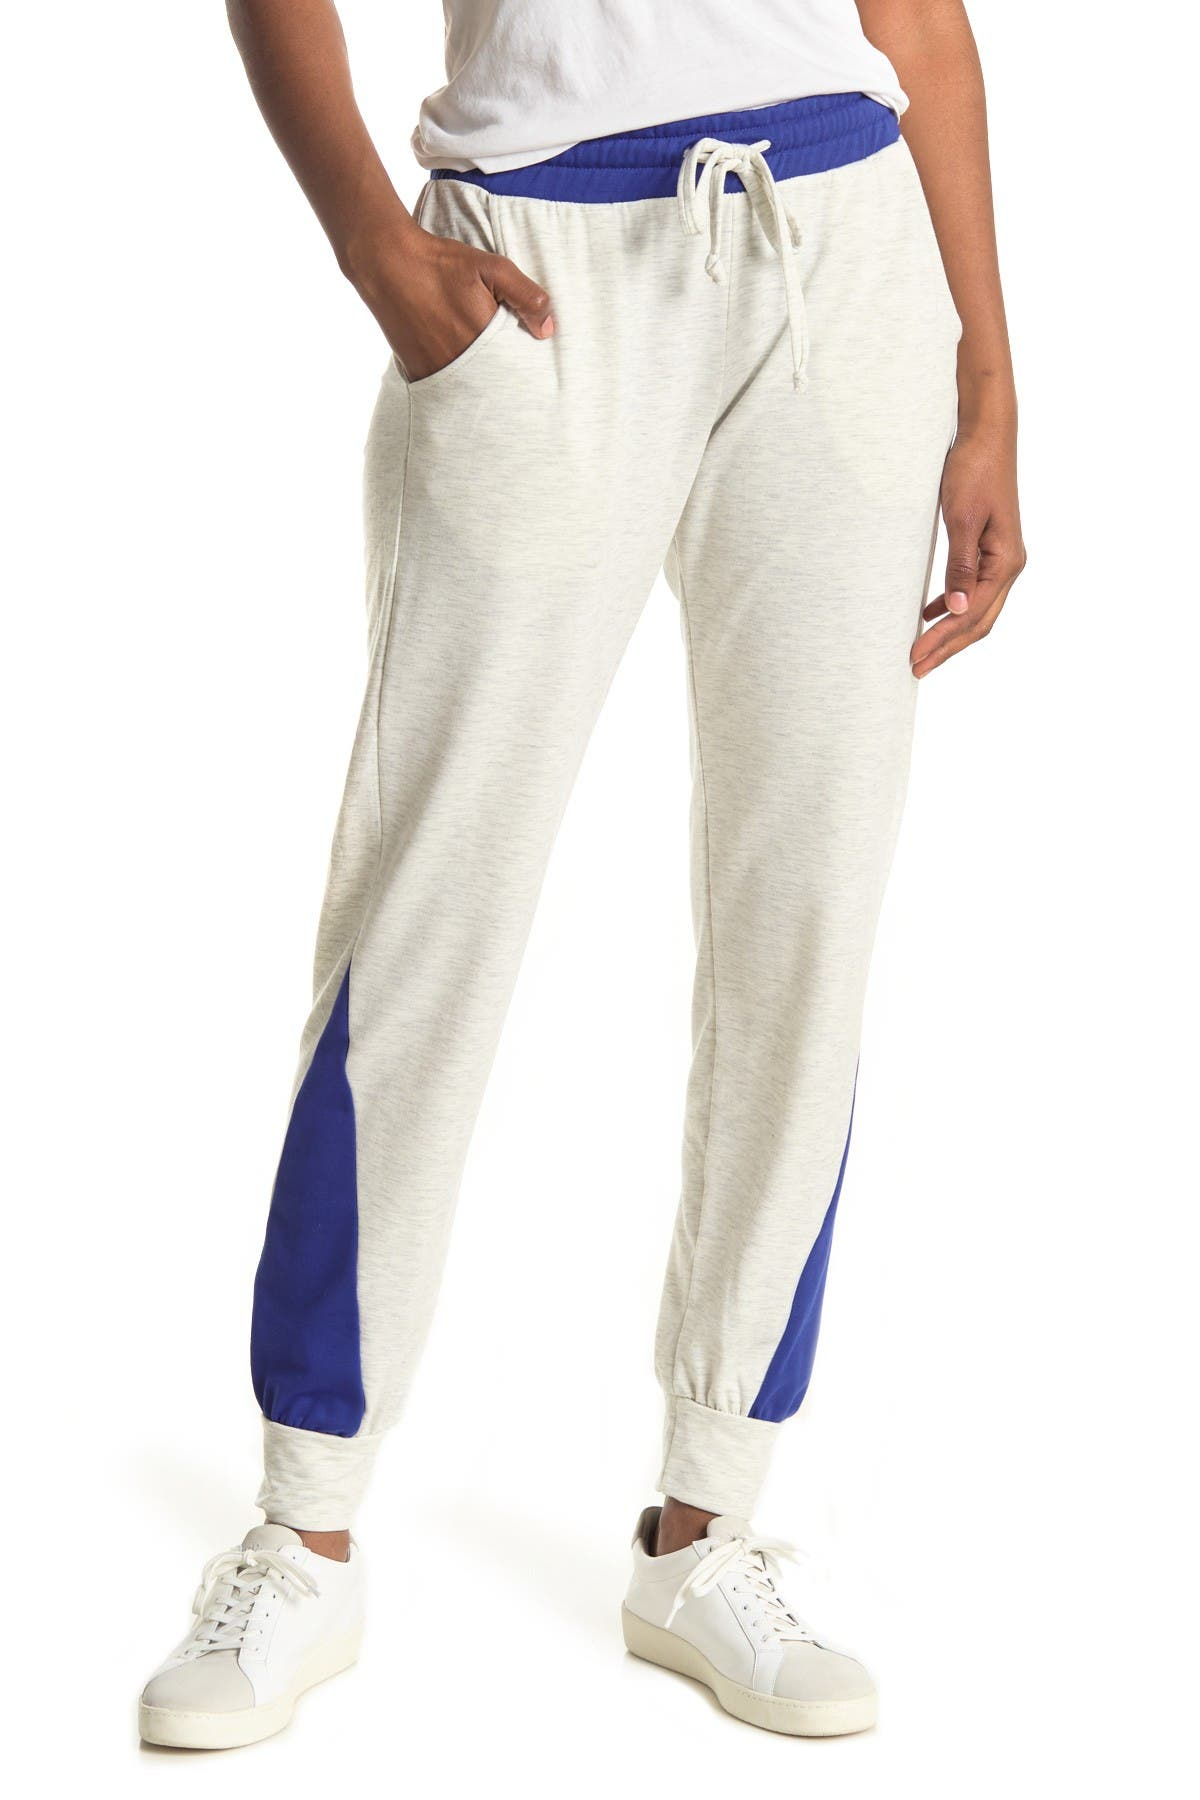 Image of PST by Project Social T Colorblock Fleece Joggers